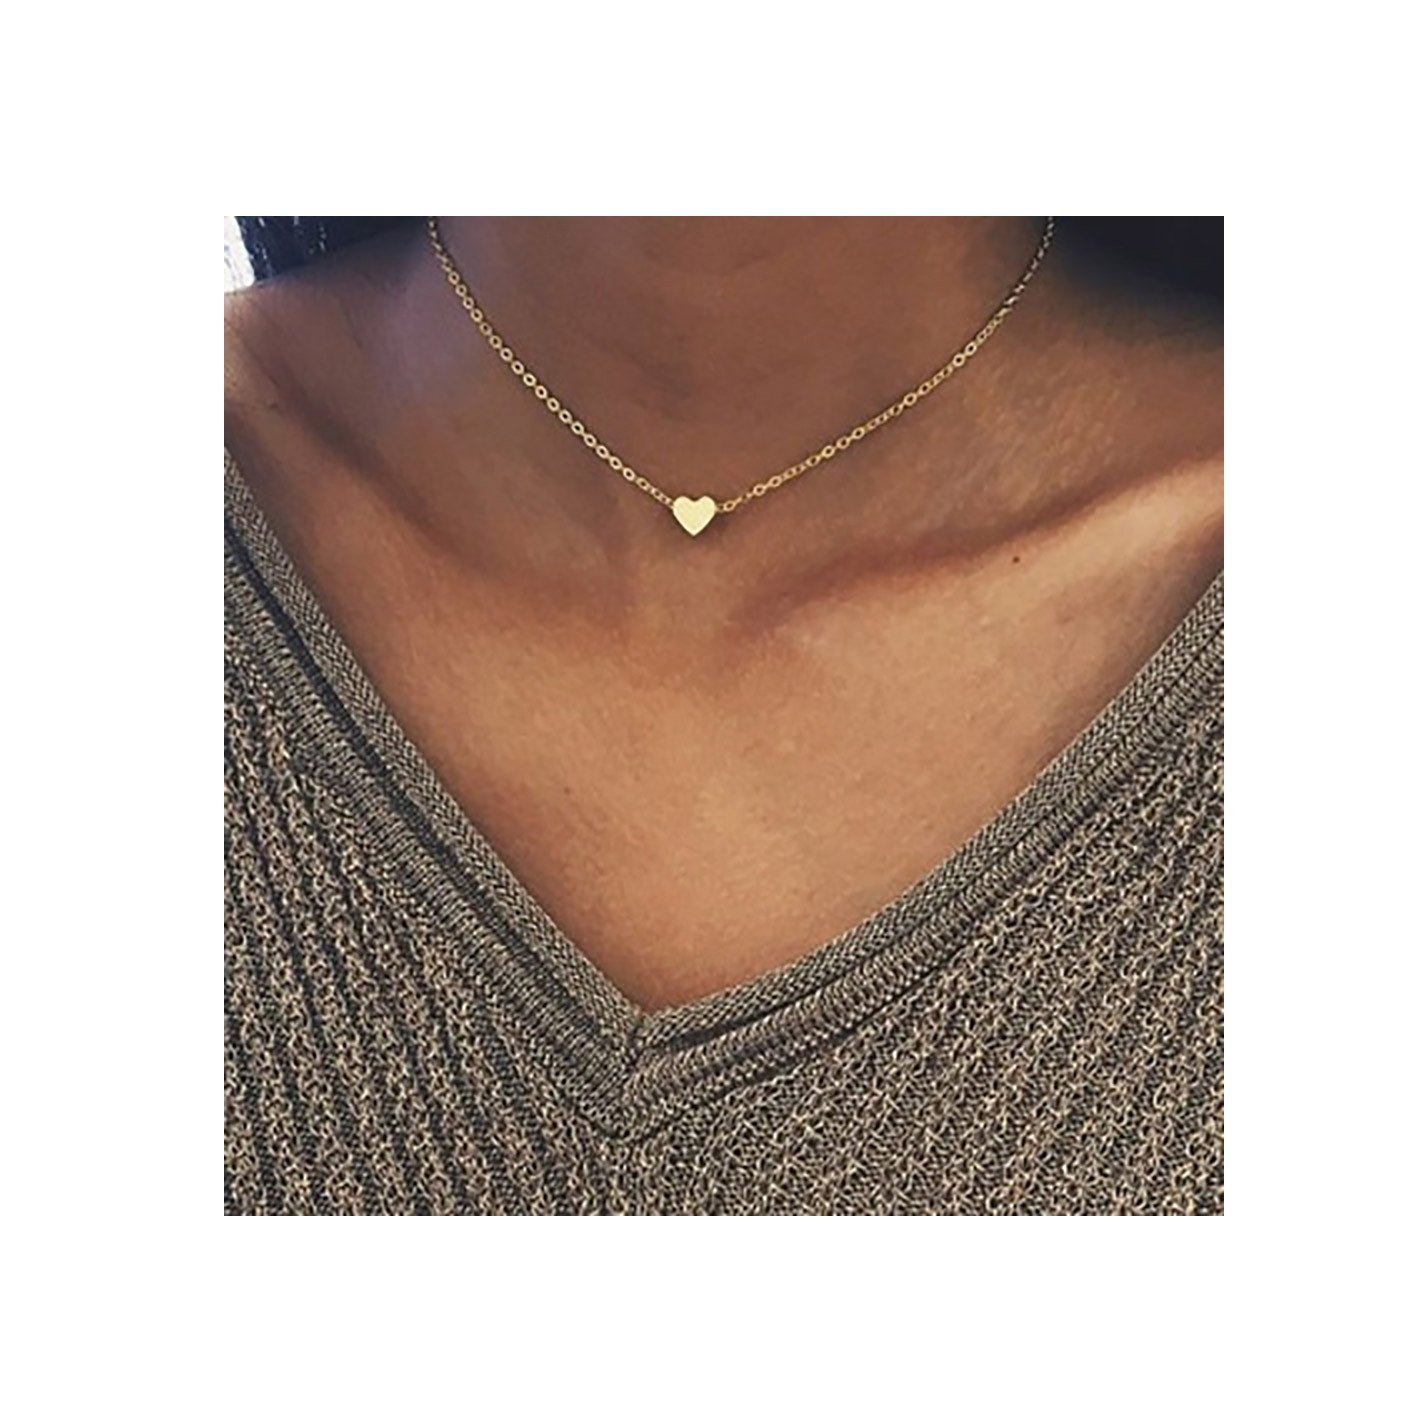 Fashion Necklace, Hoshell Crystal Heart Necklace For Women Romantic Fashion Classic Elegant Heart Chain Necklace (Gold)